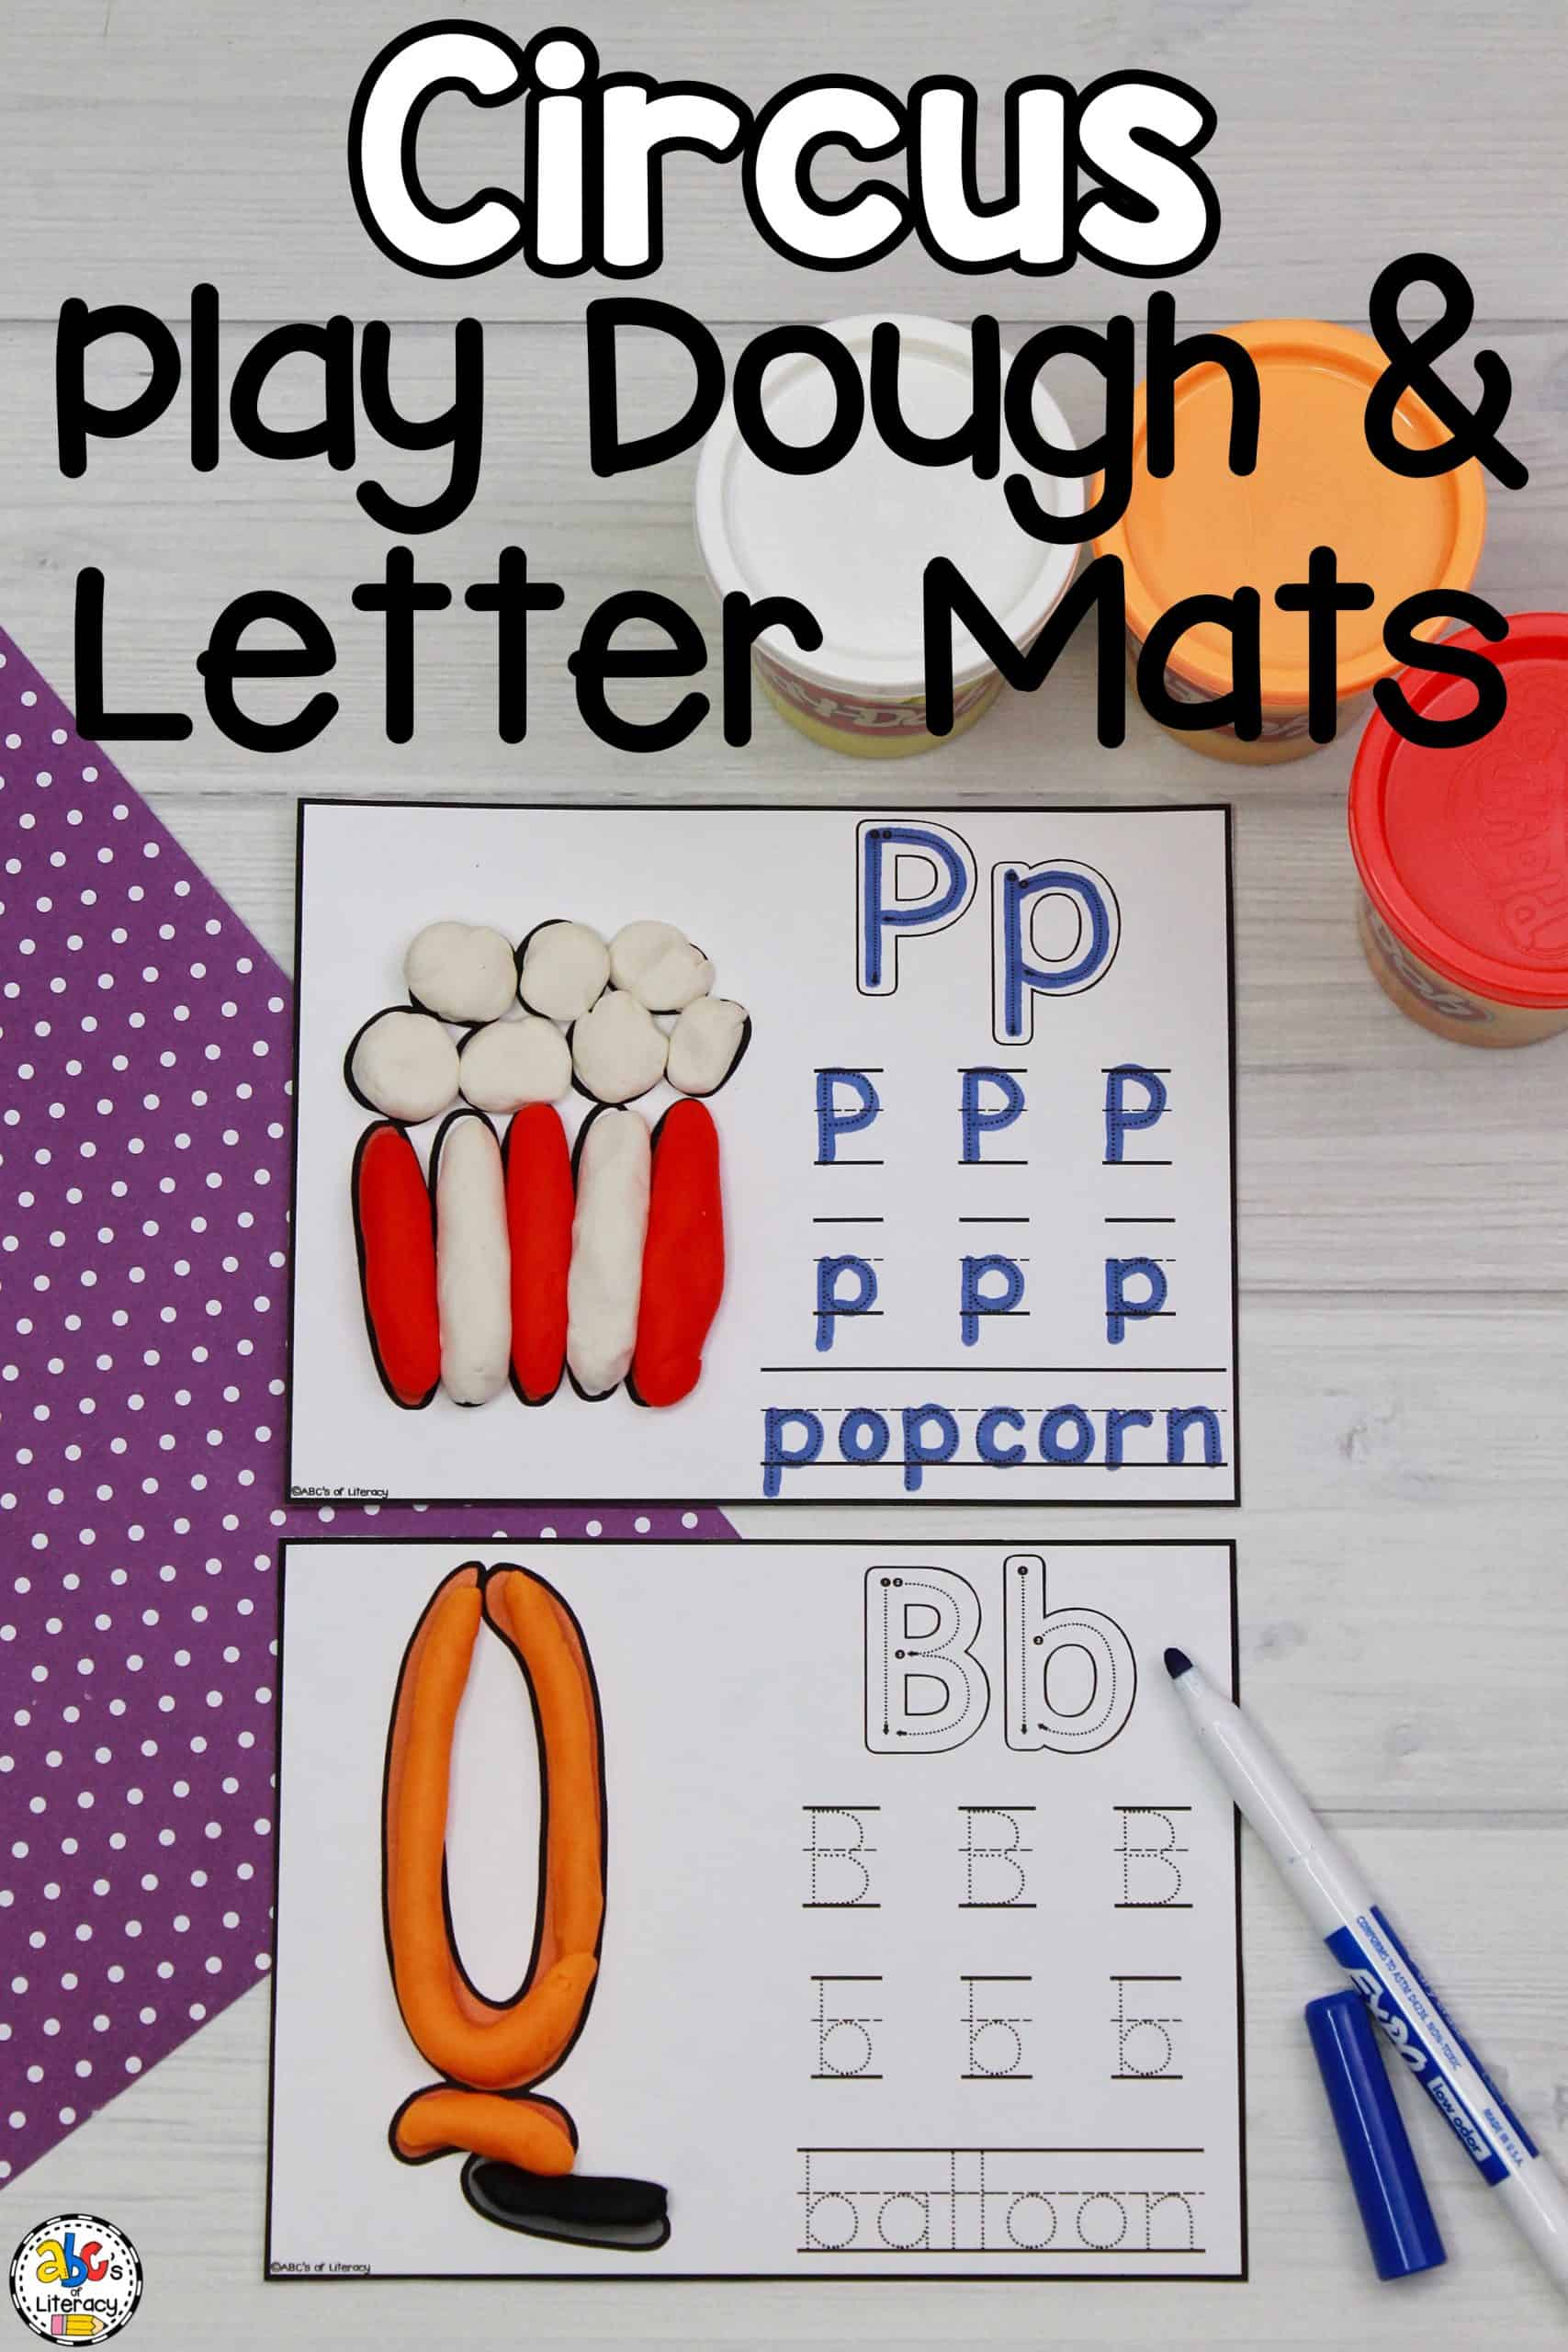 Circus Play Dough & Letter Mats